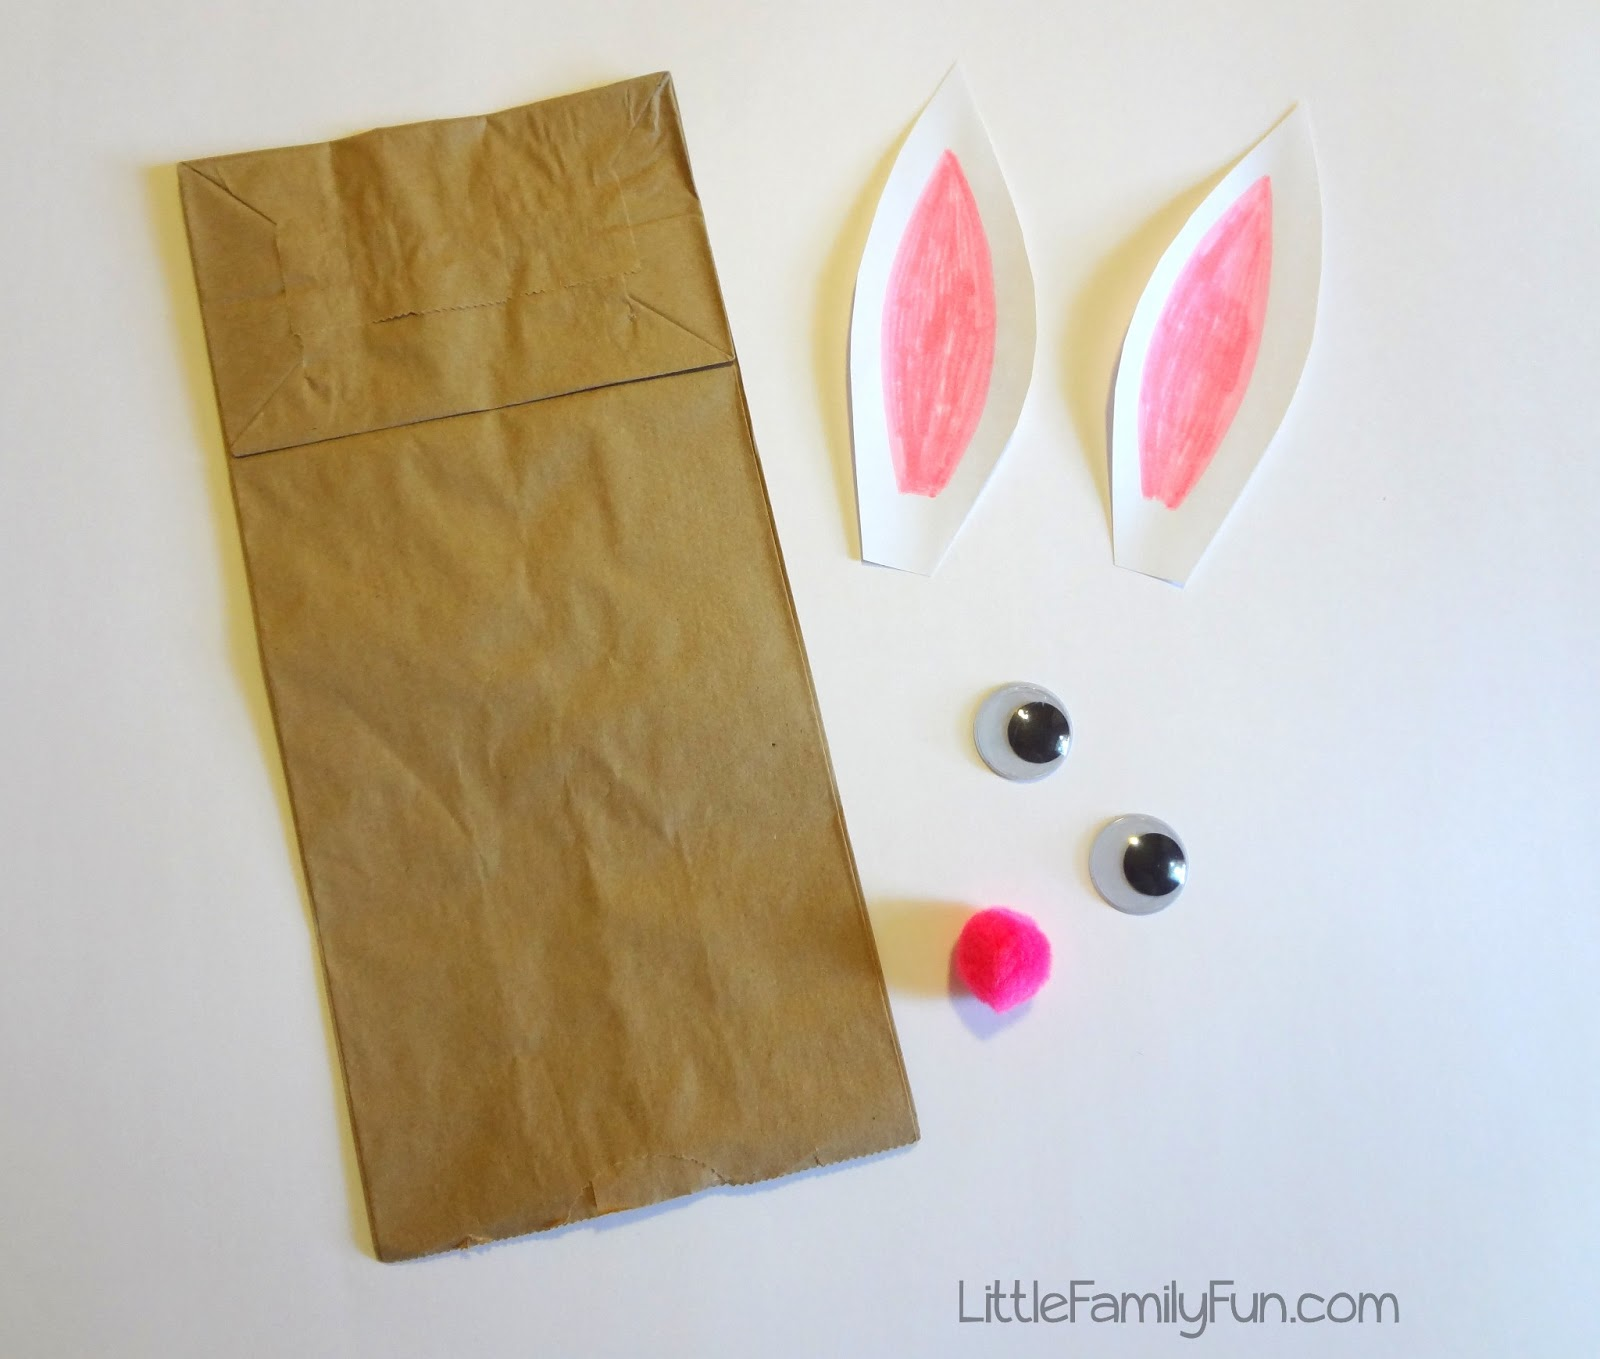 Little family fun brown bag bunny puppet brown bag bunny puppet jeuxipadfo Gallery